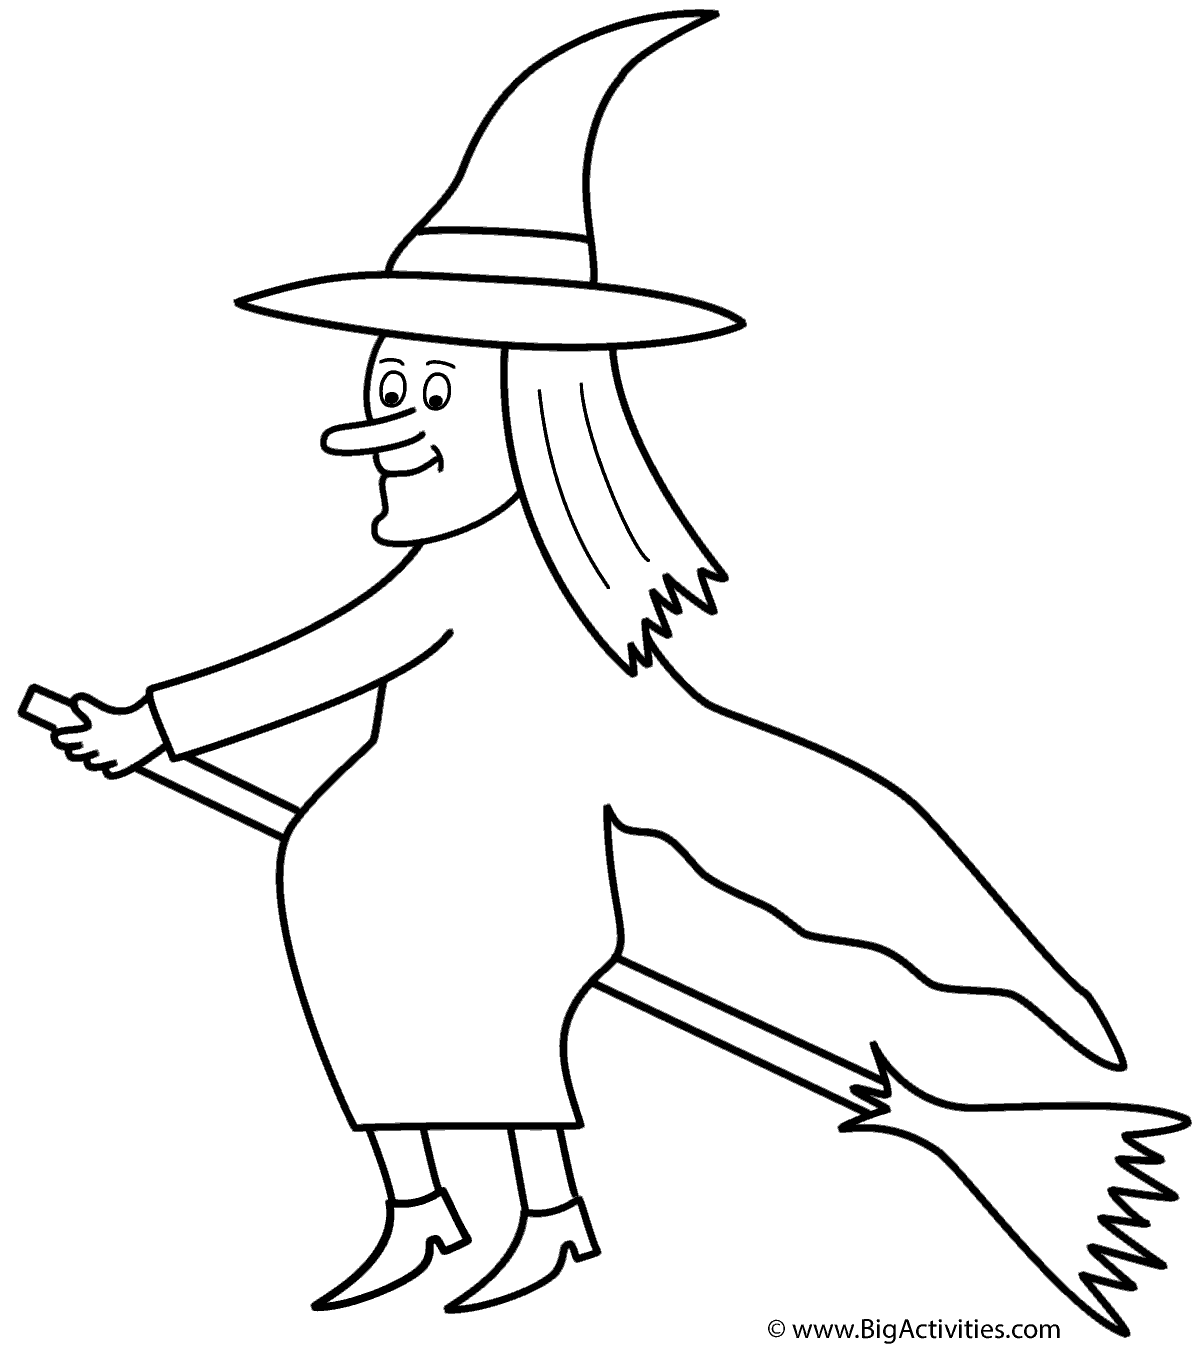 Witch On A Broom Coloring Page Great For Room On The Broom By Julia Donaldso Witch Coloring Pages Halloween Coloring Pages Printable Halloween Coloring Pages